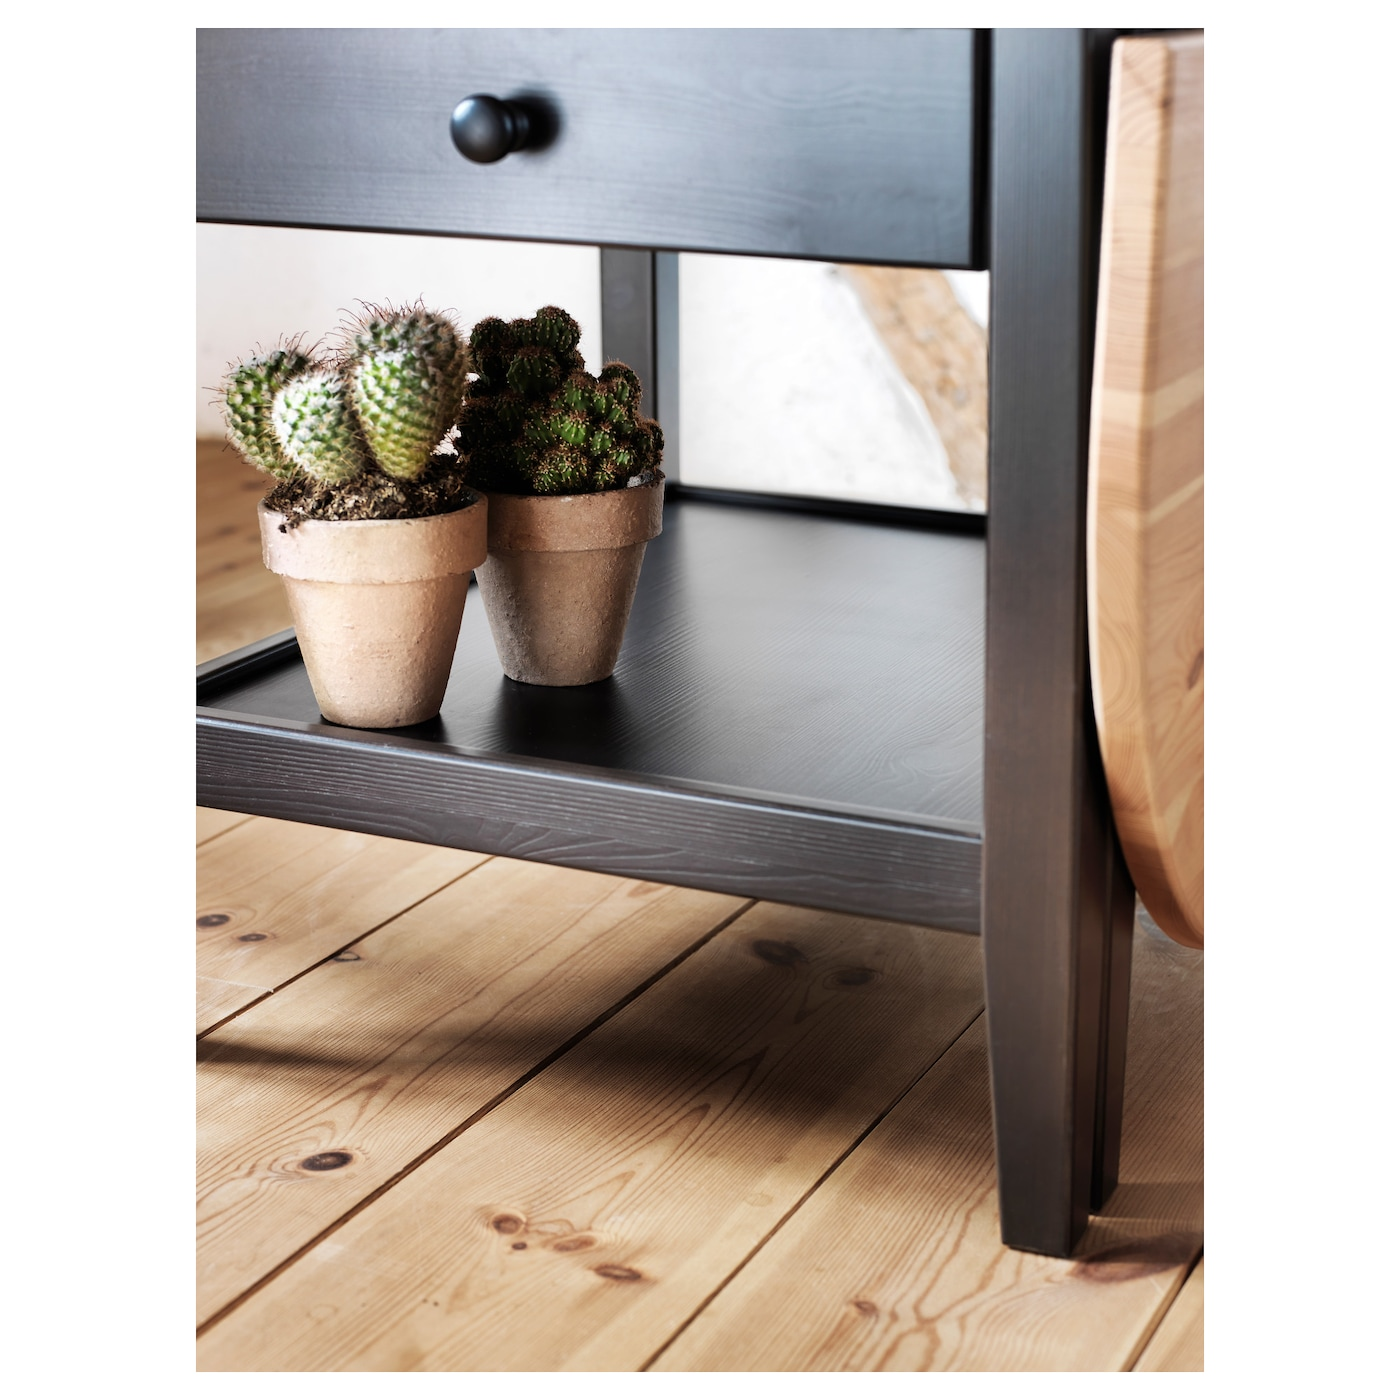 ARKELSTORP Coffee table Black 65x140x52 cm IKEA